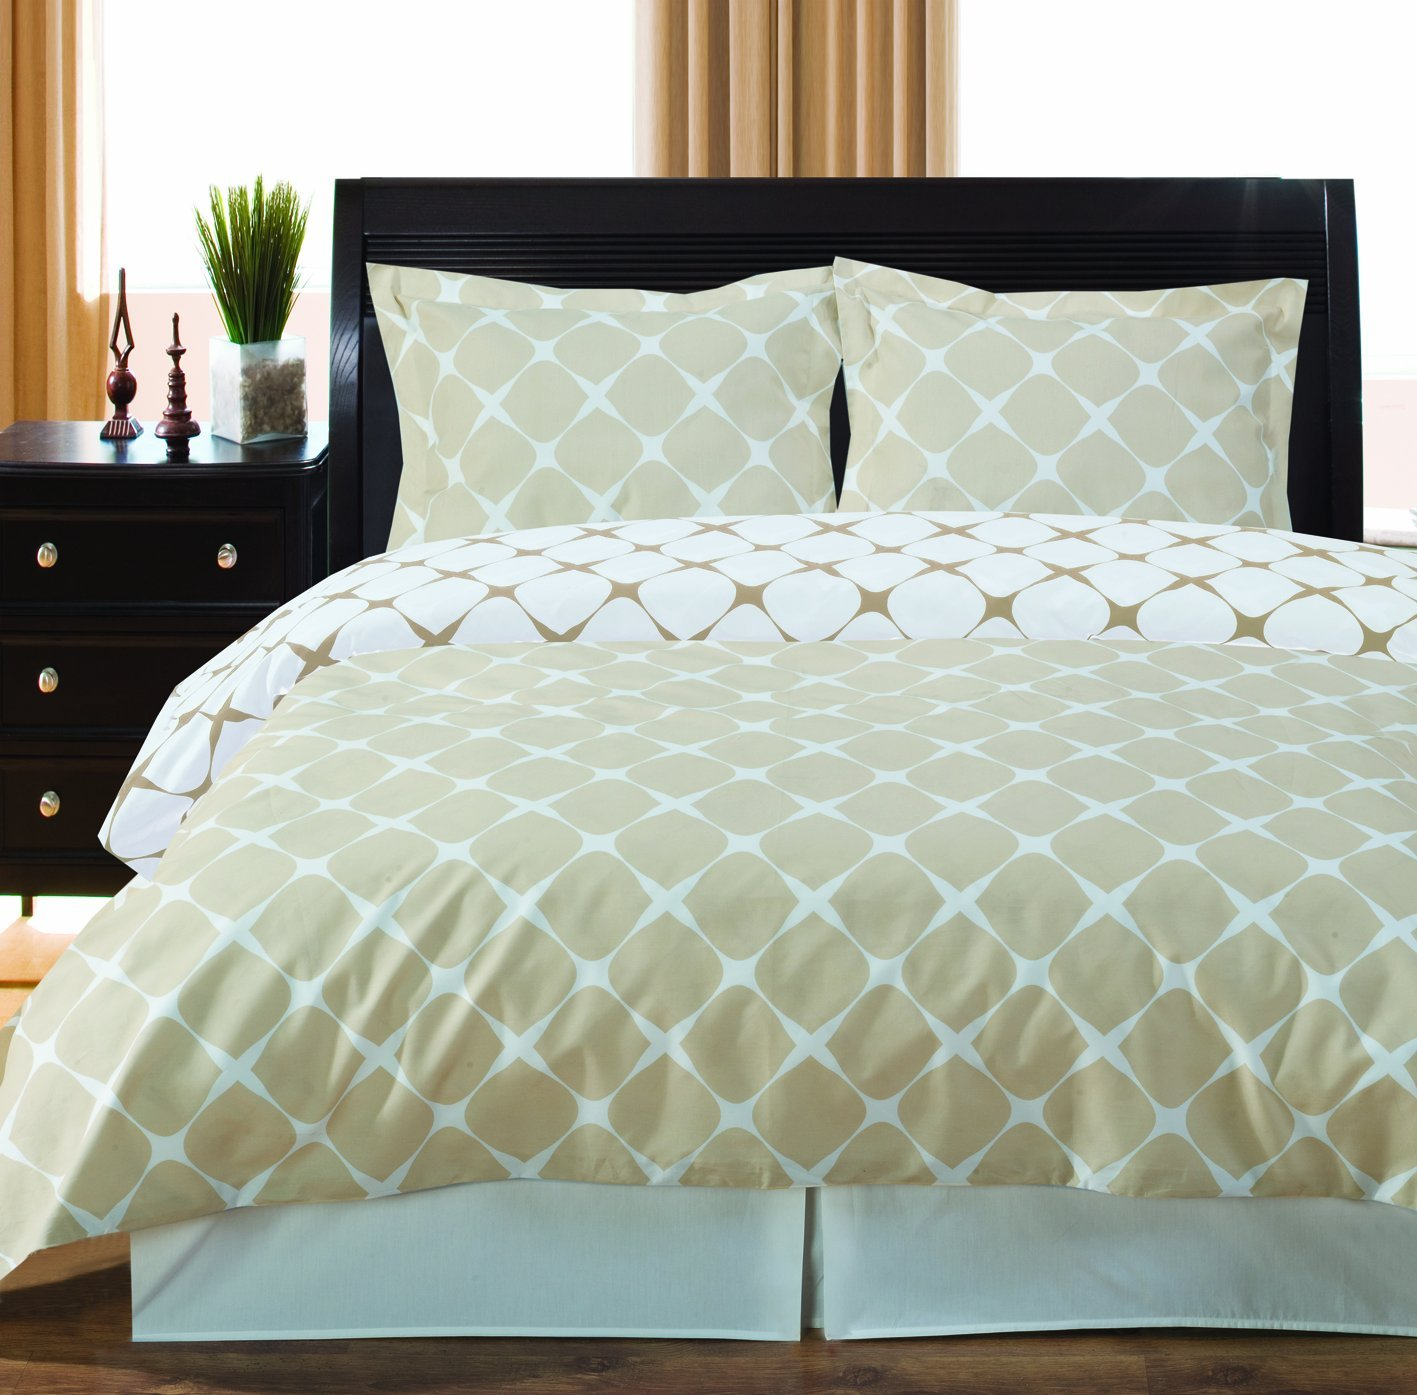 Paris Duvet Cover Queen | Queen Duvet Covers | Target King Size Comforters